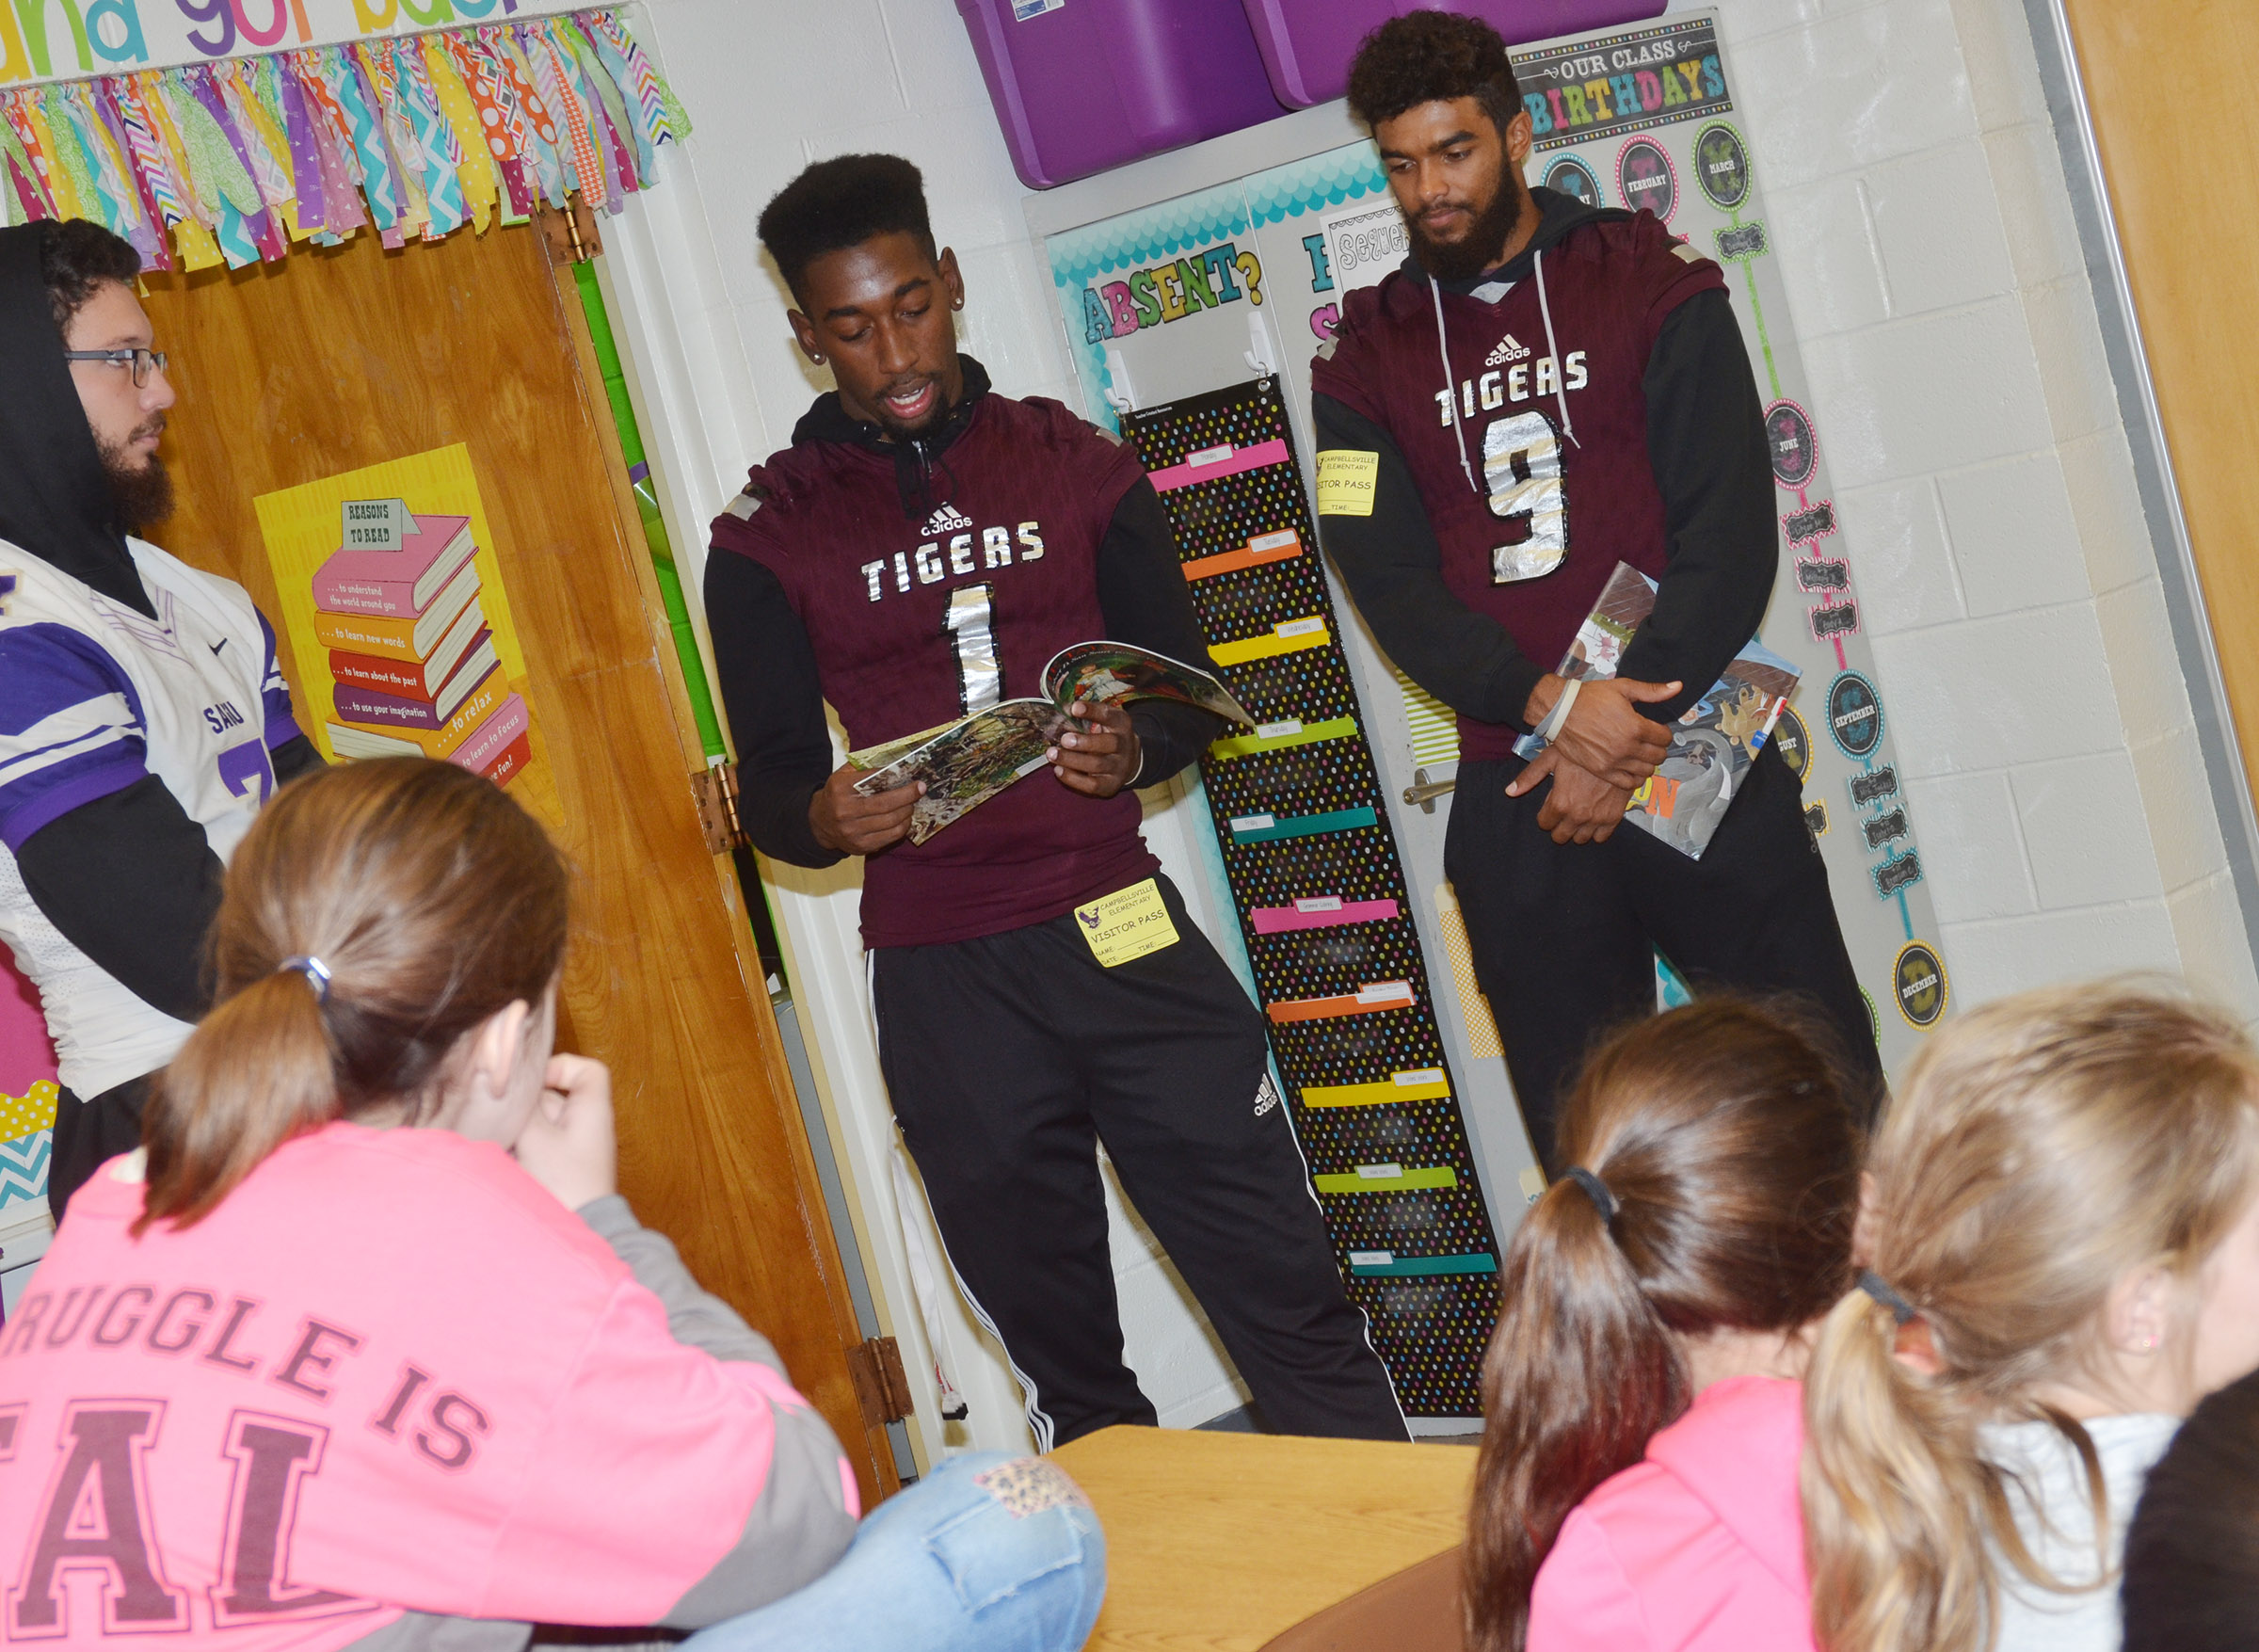 CU player Kendon Young reads to CES fifth-graders. Young graduated from Campbellsville High School in 2016. At left is SAGU player Matt Lighter and at right is CU player Brayden Russell.